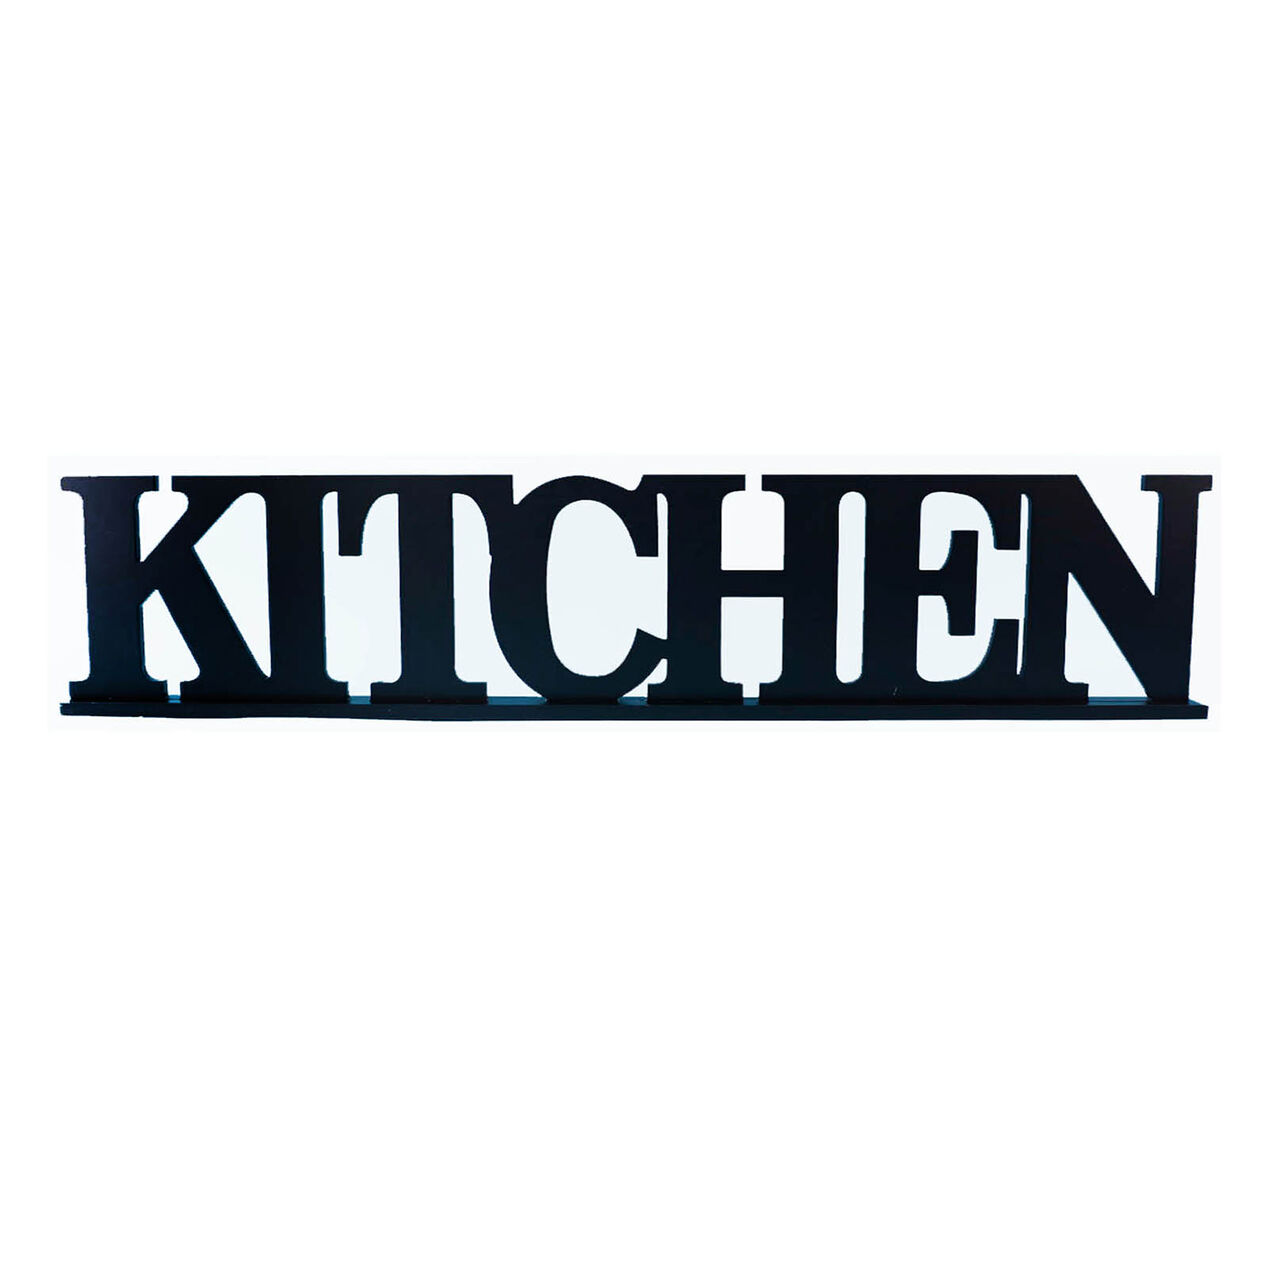 35.5 x 10 u0026quot;Kitchenu0026quot; Word on Base - At Home